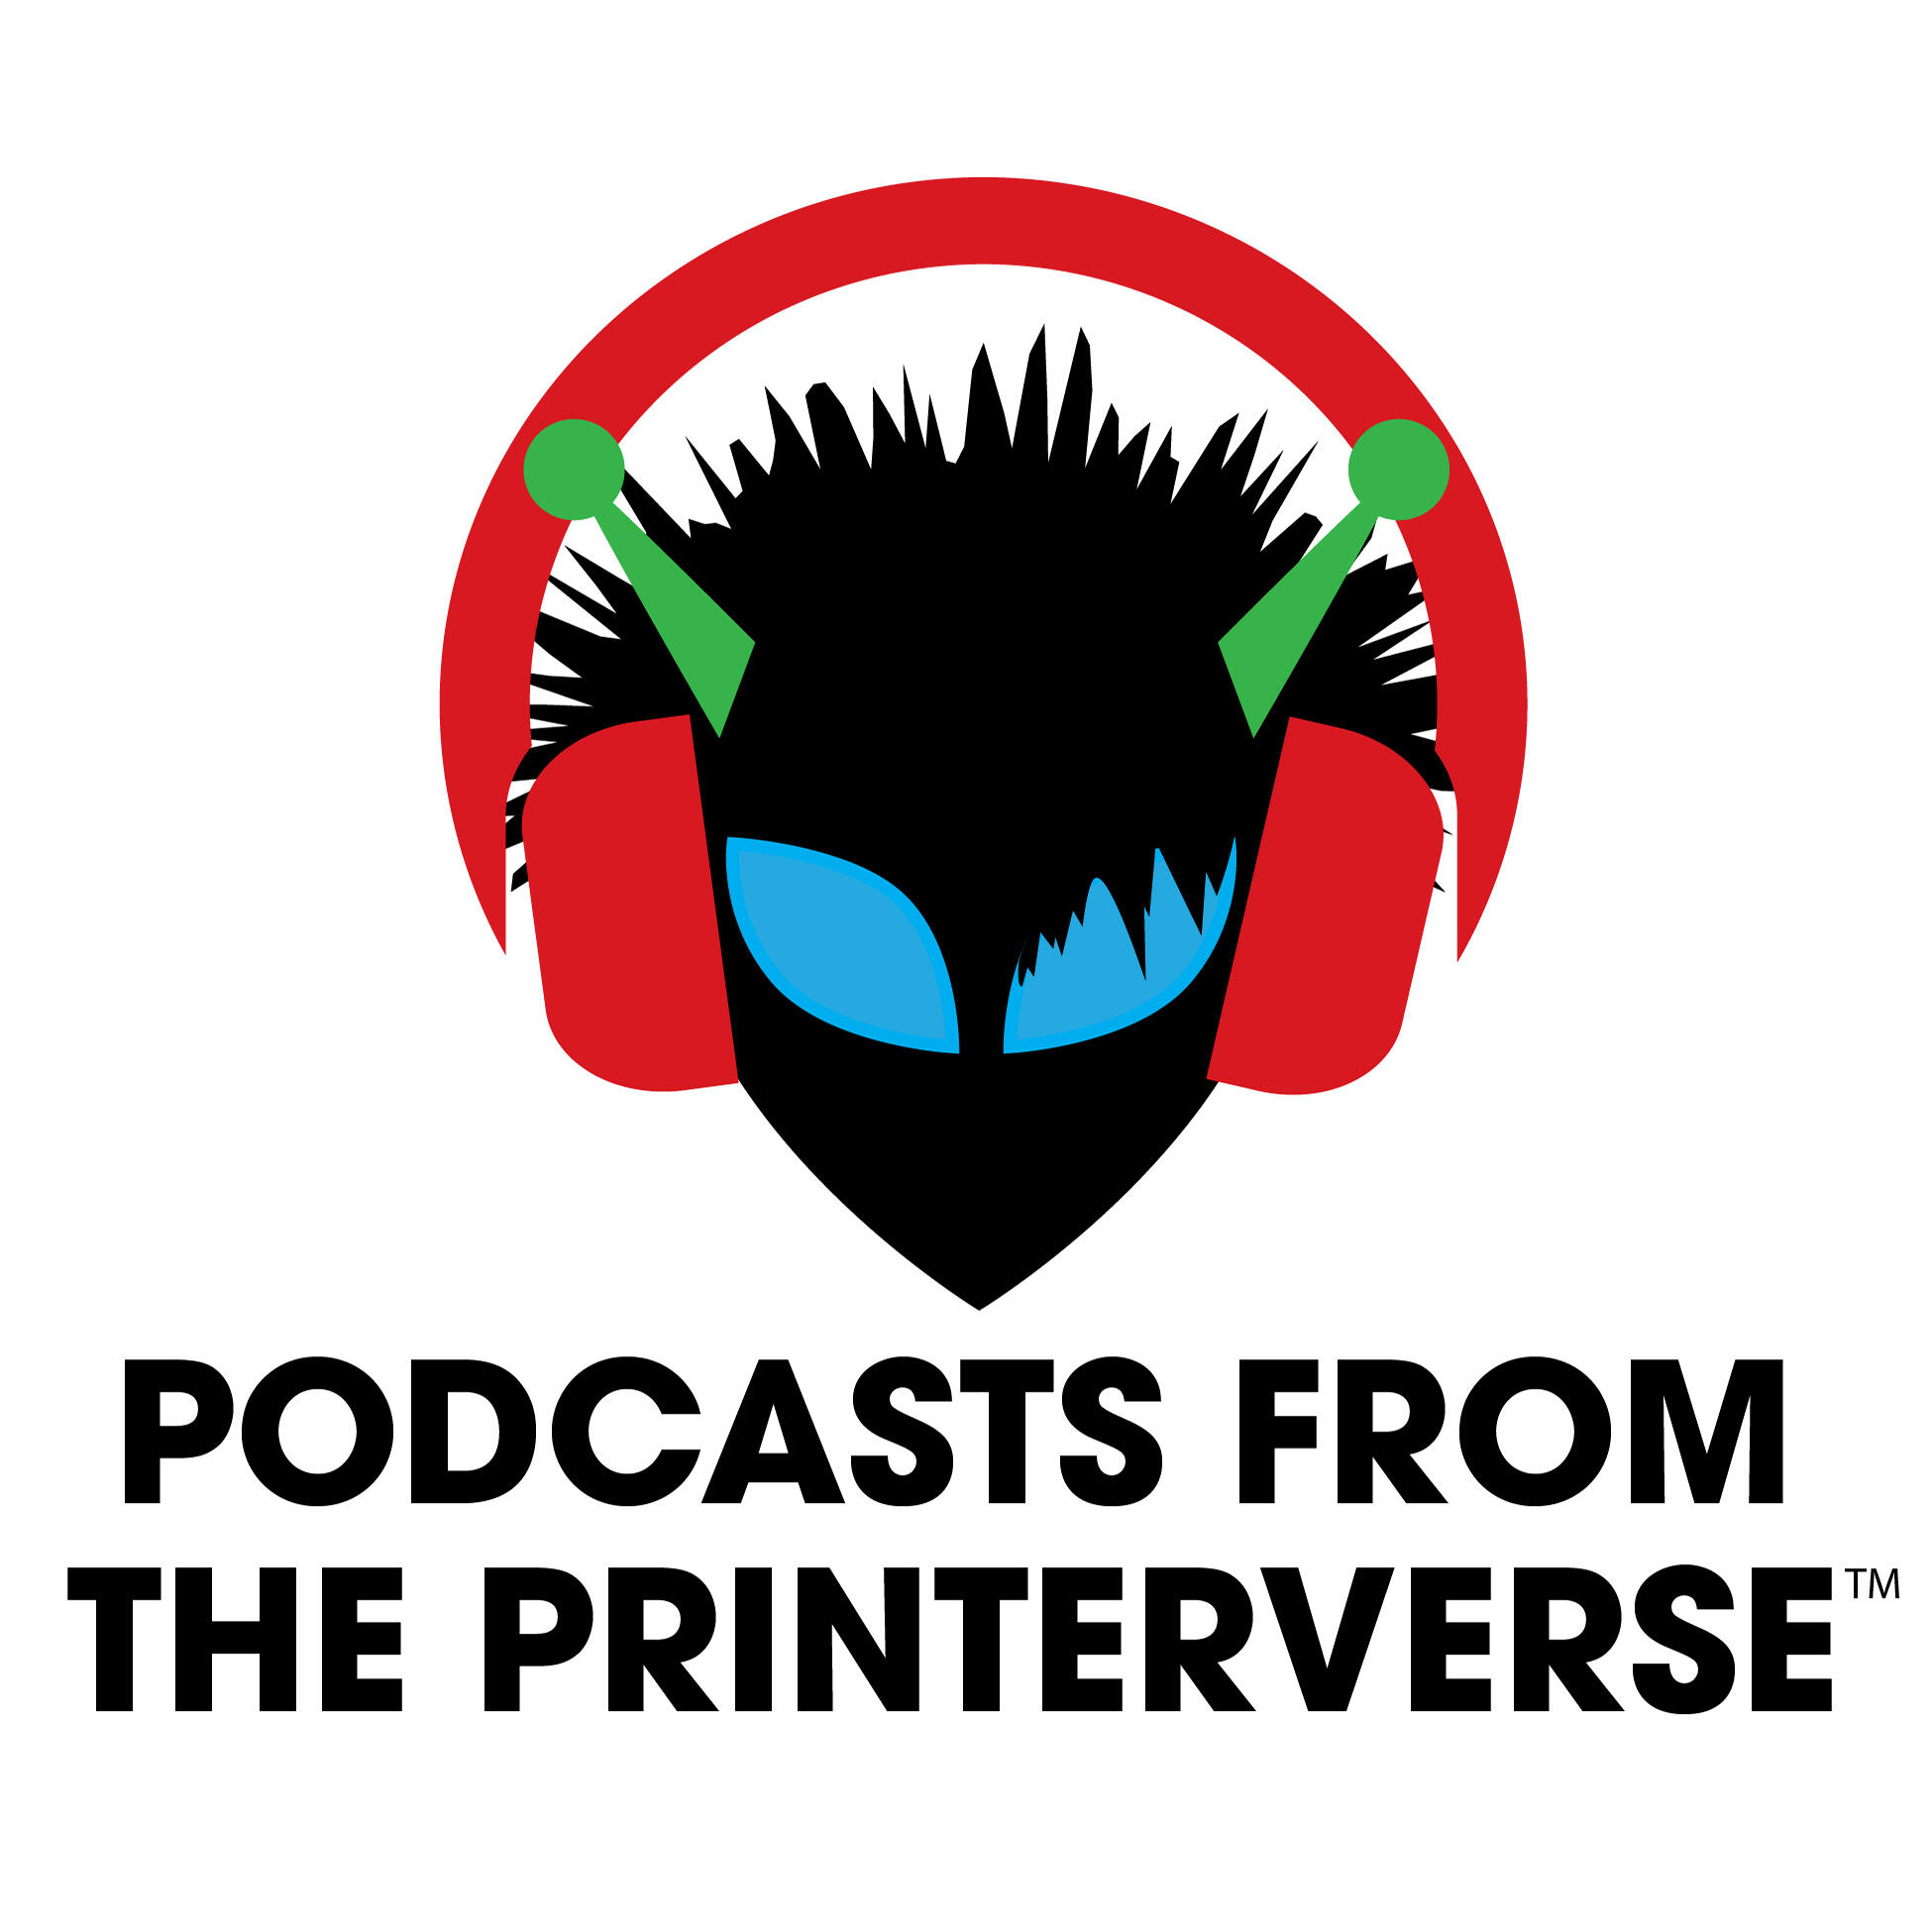 Podcasts From The Printerverse